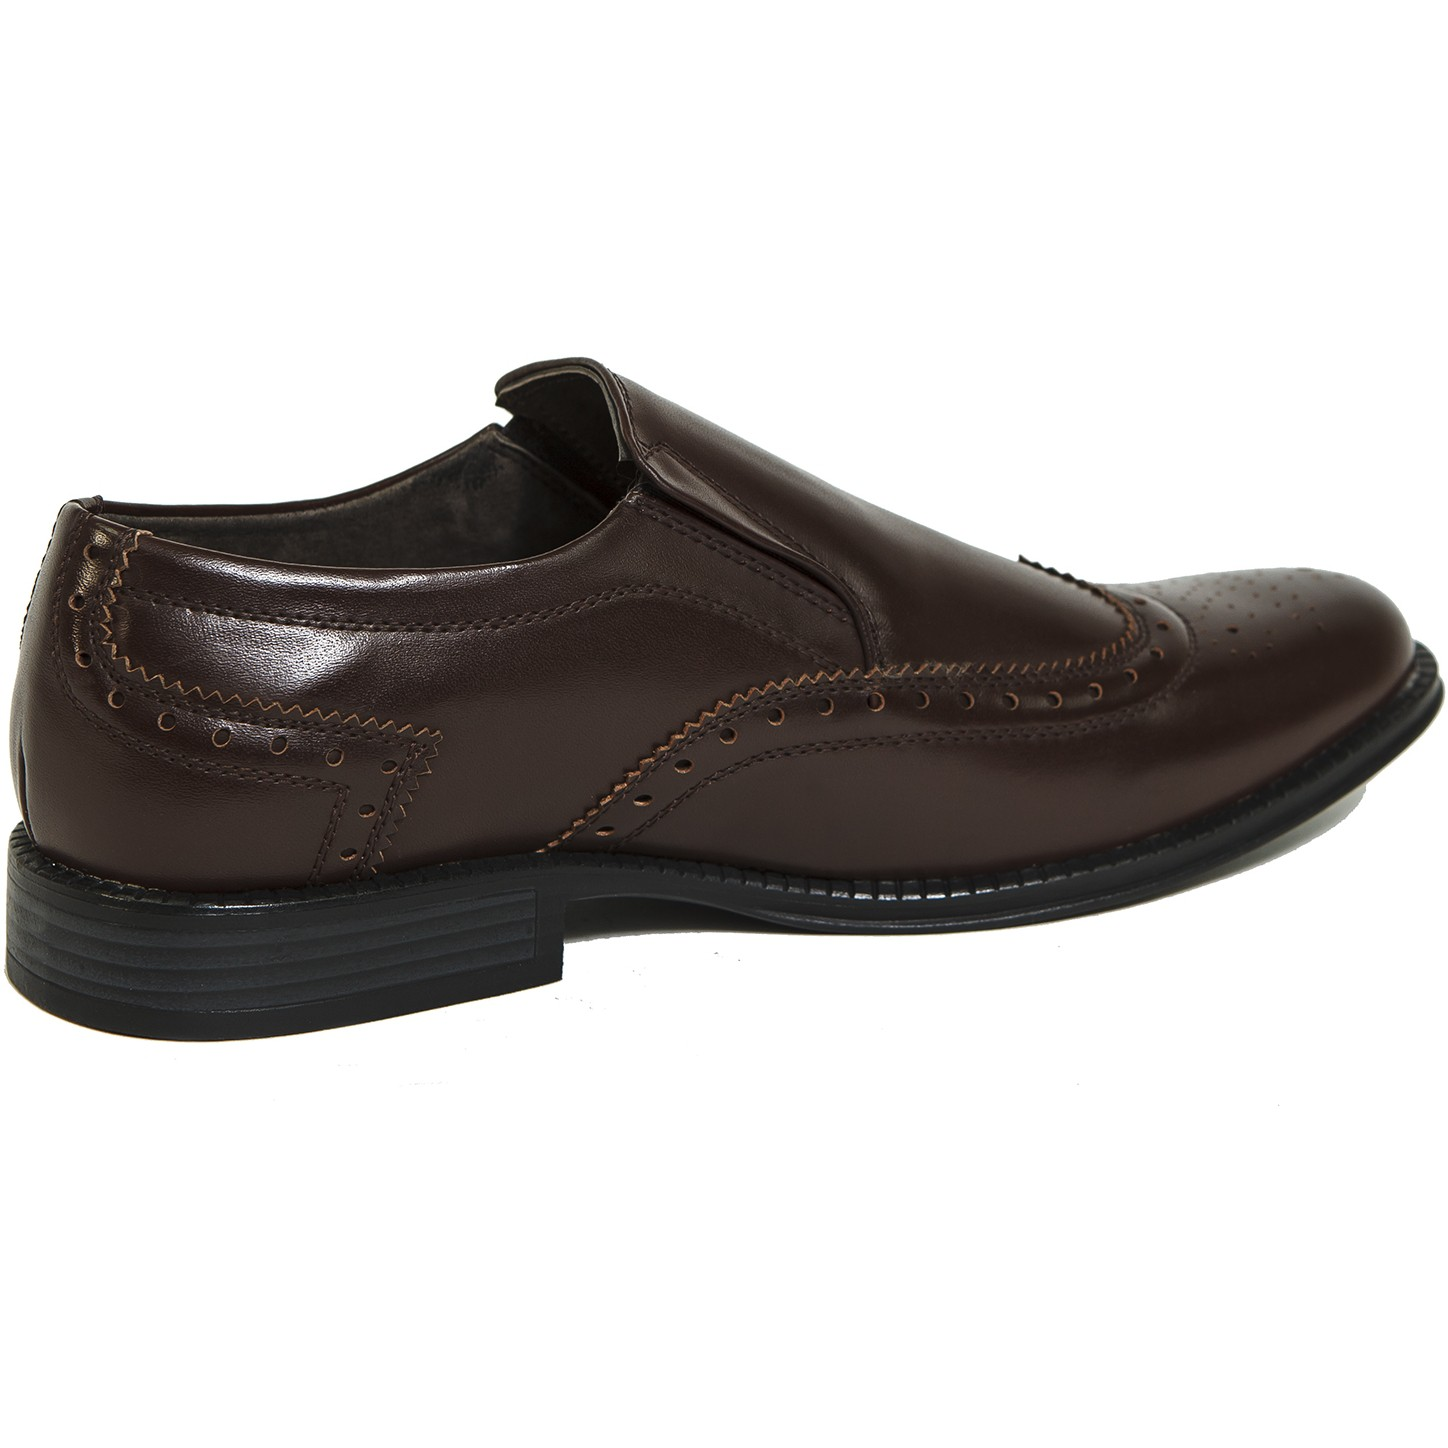 Alpine-Swiss-Basel-Mens-Wing-Tip-Dress-Shoes-Brogue-Medallion-Slip-On-Loafers thumbnail 18